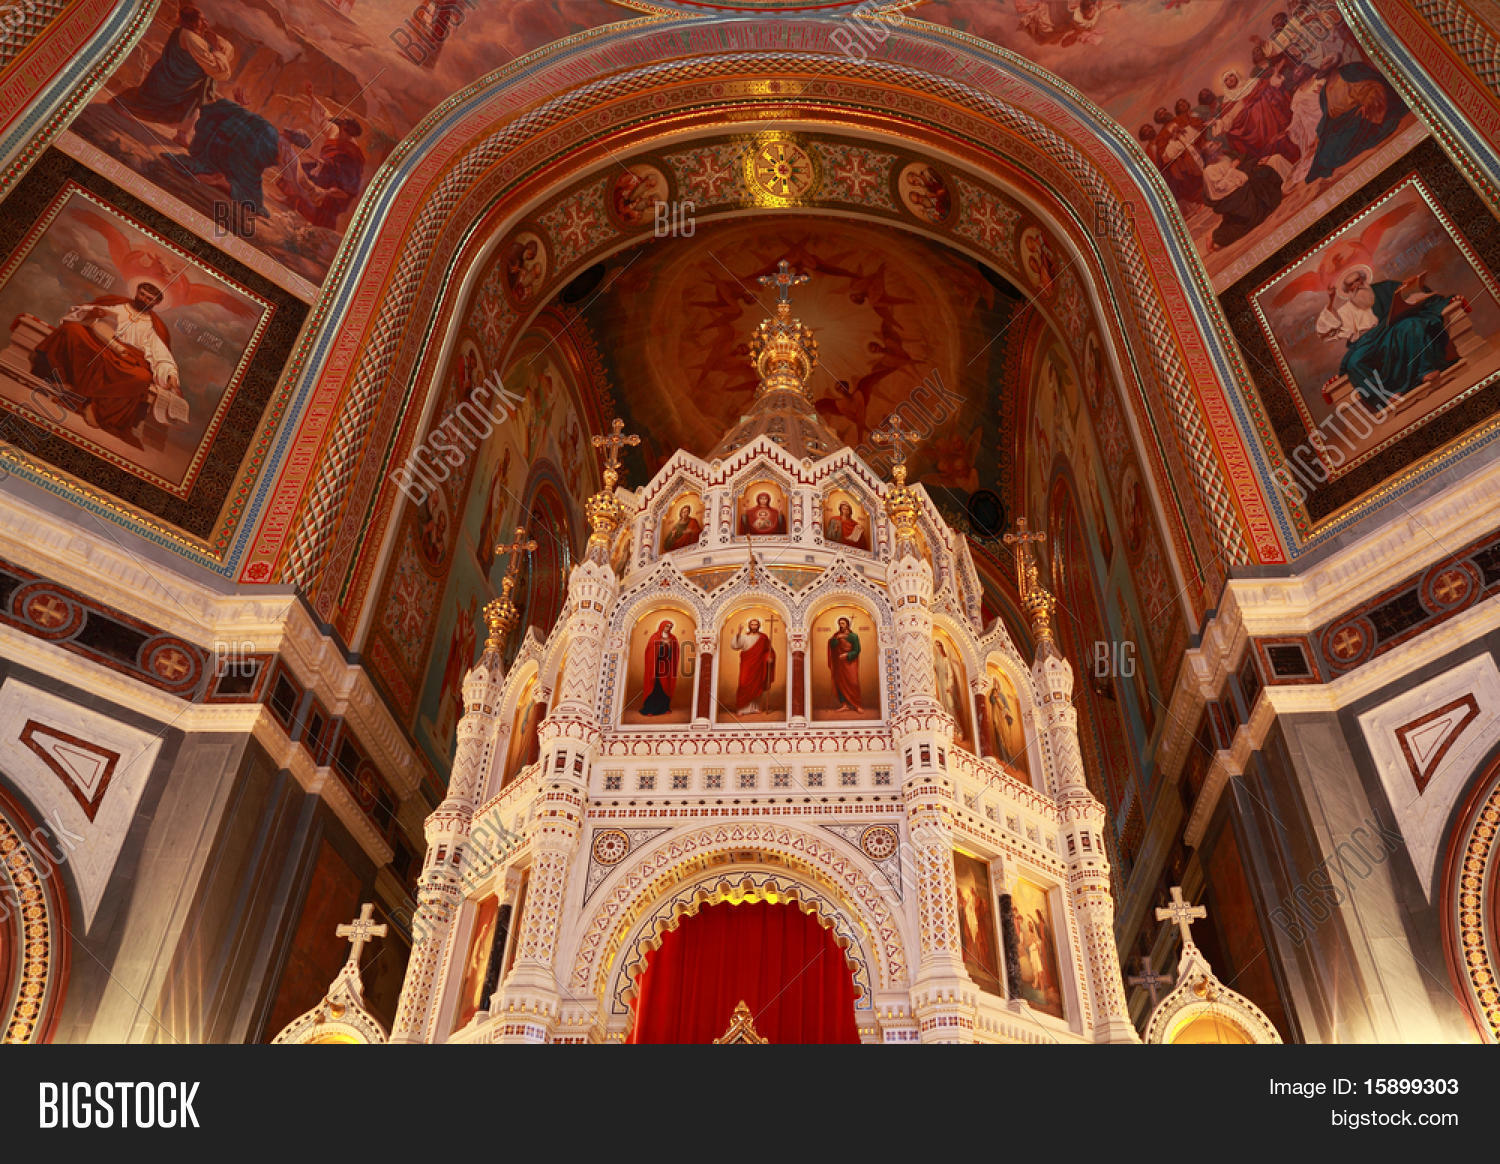 Arch Over Altar Inside Image Photo Free Trial Bigstock